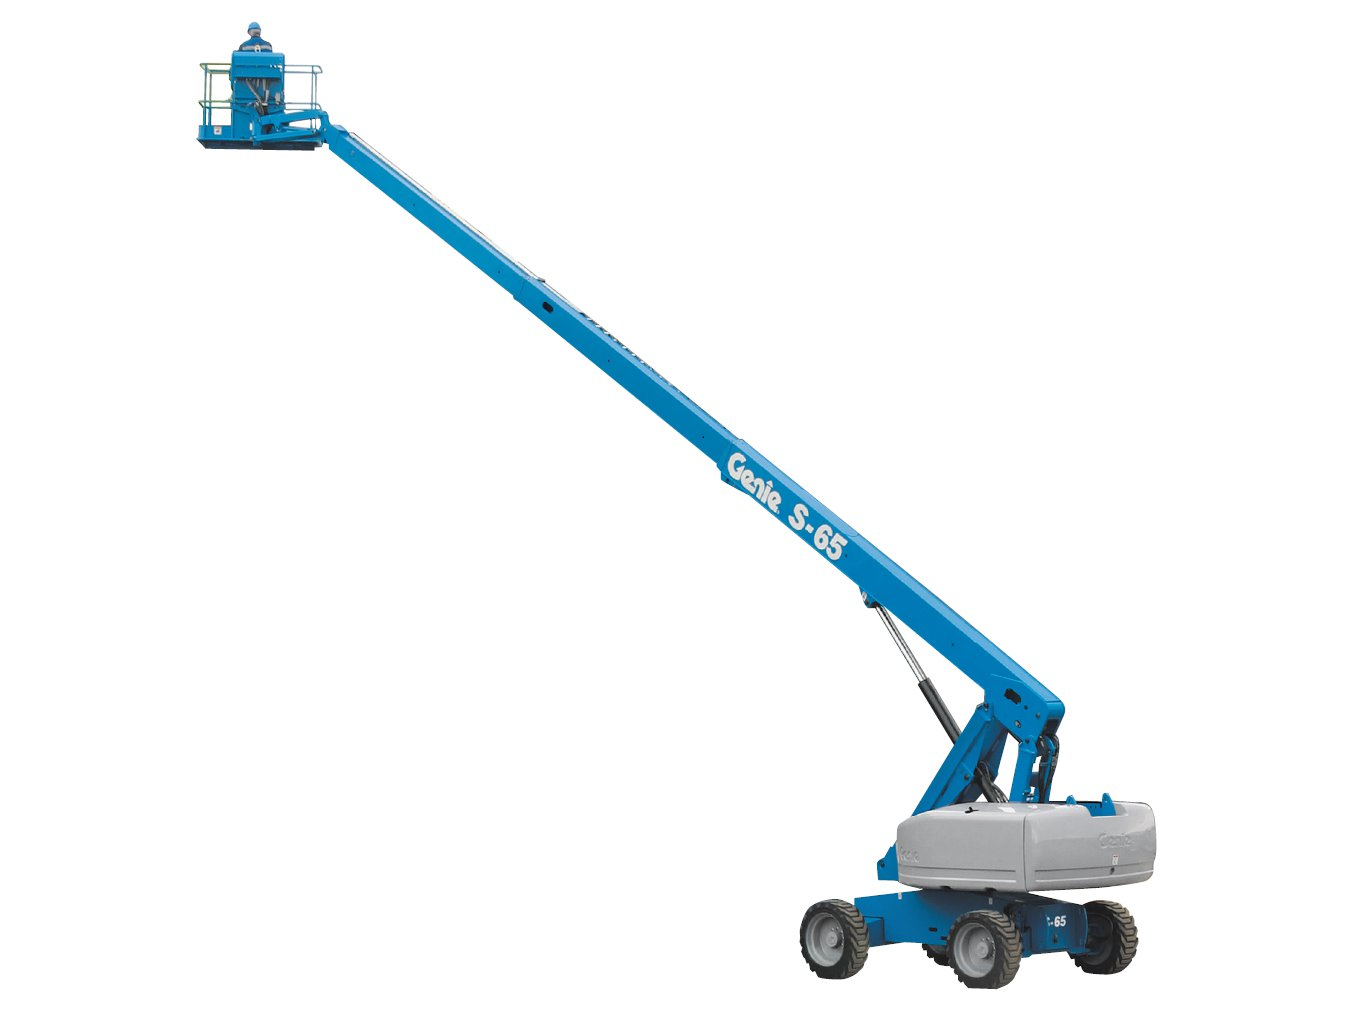 genie-s65-boom-lift-elevation